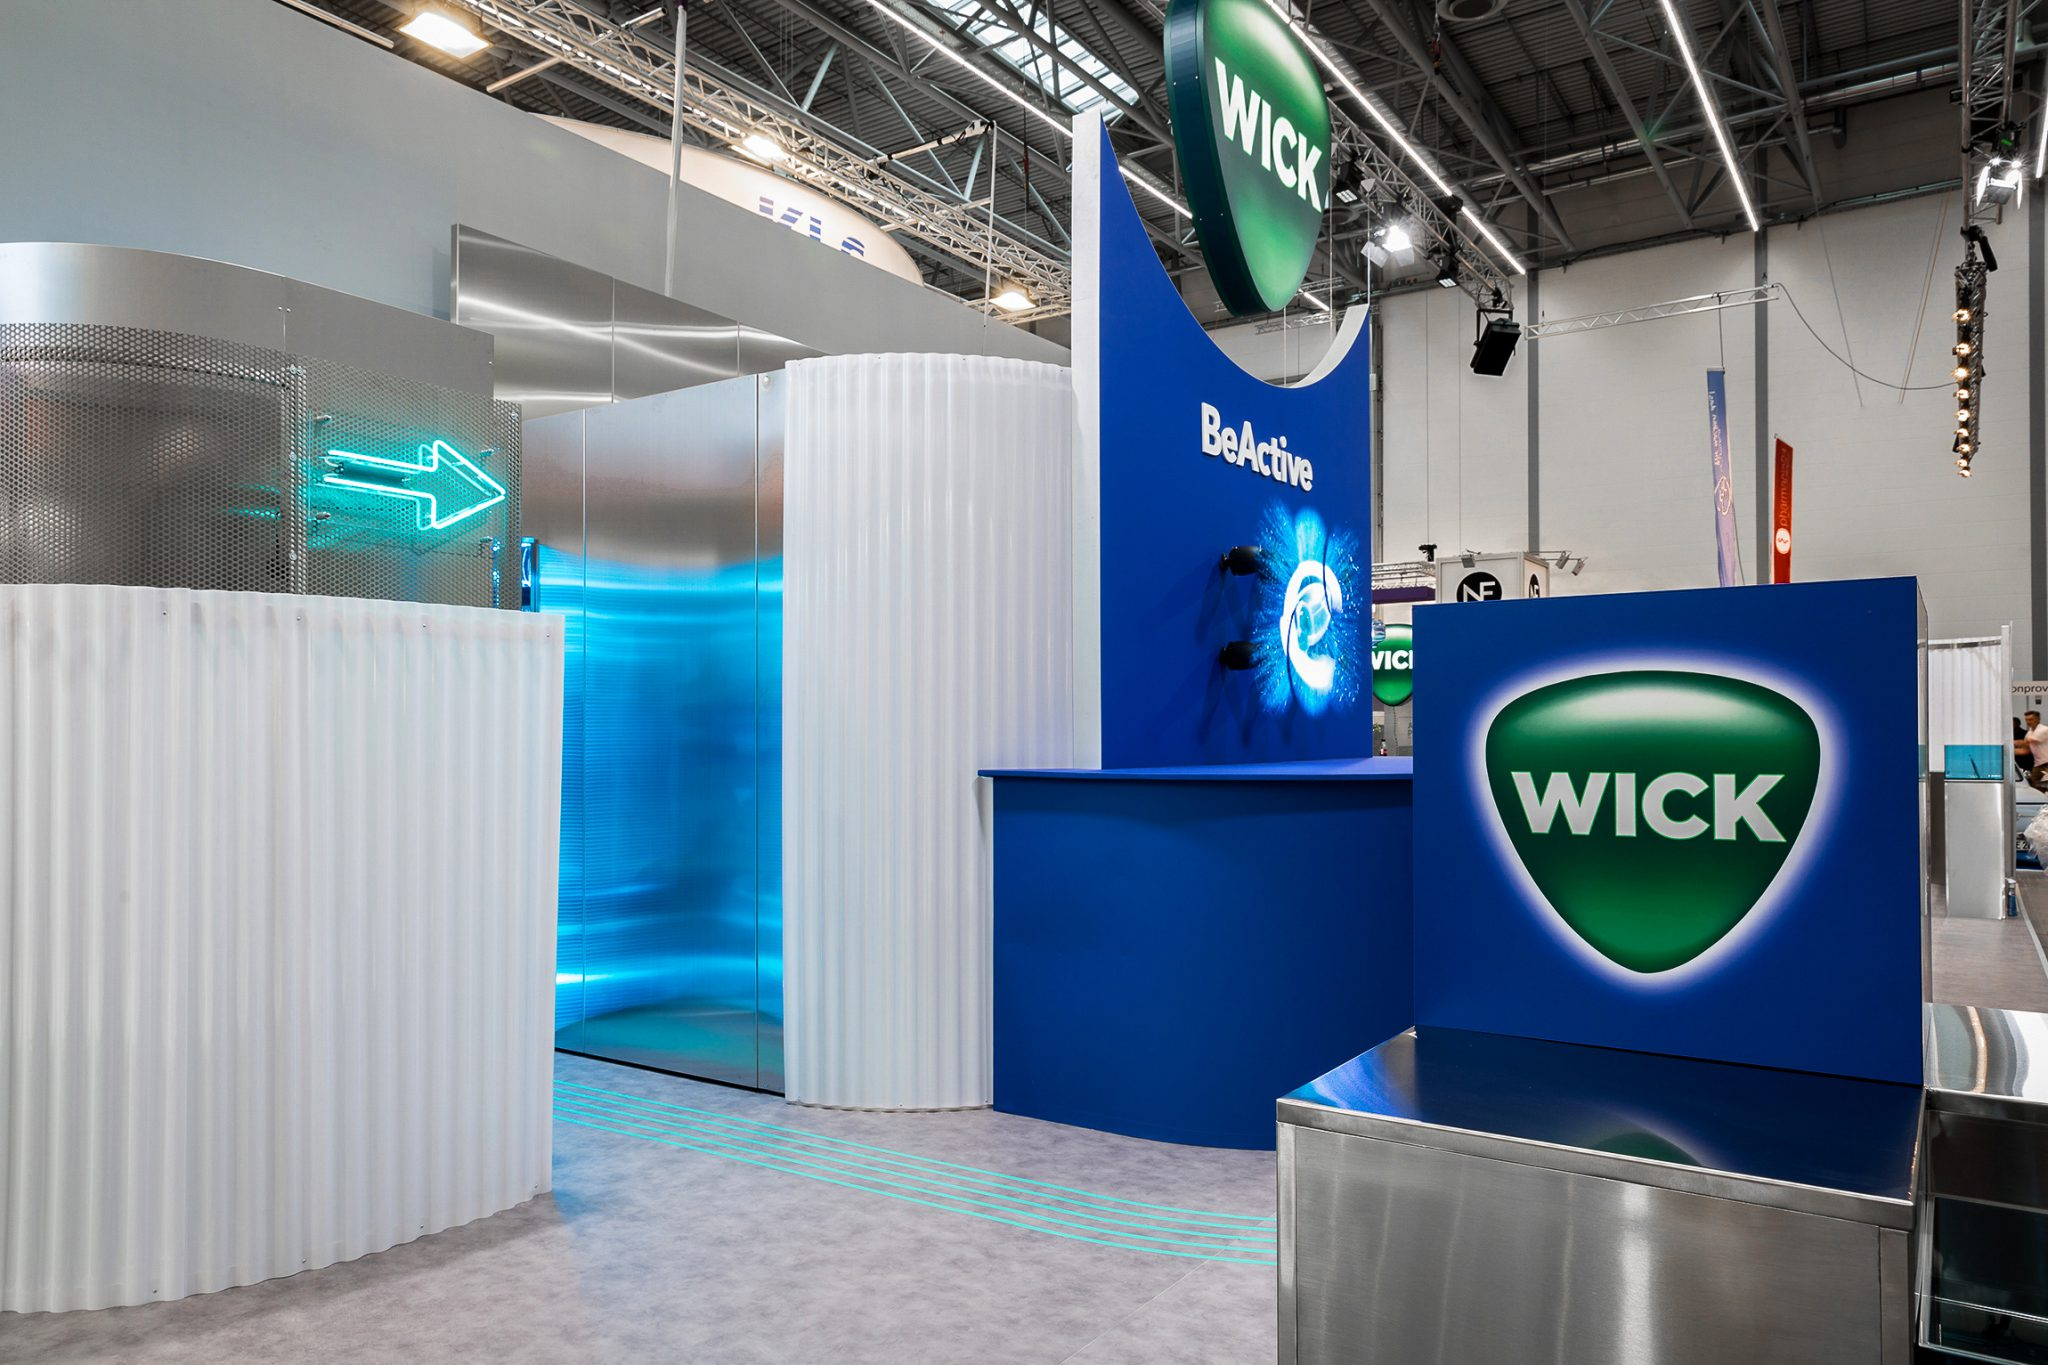 Wick Expopharm 2019, Design Stil Manipulation 2019, Expopharm, Messestand Design, Messe Design, Messebau Köln, Wick Be Active, Trade Show Design, Trade Show Booth Design,